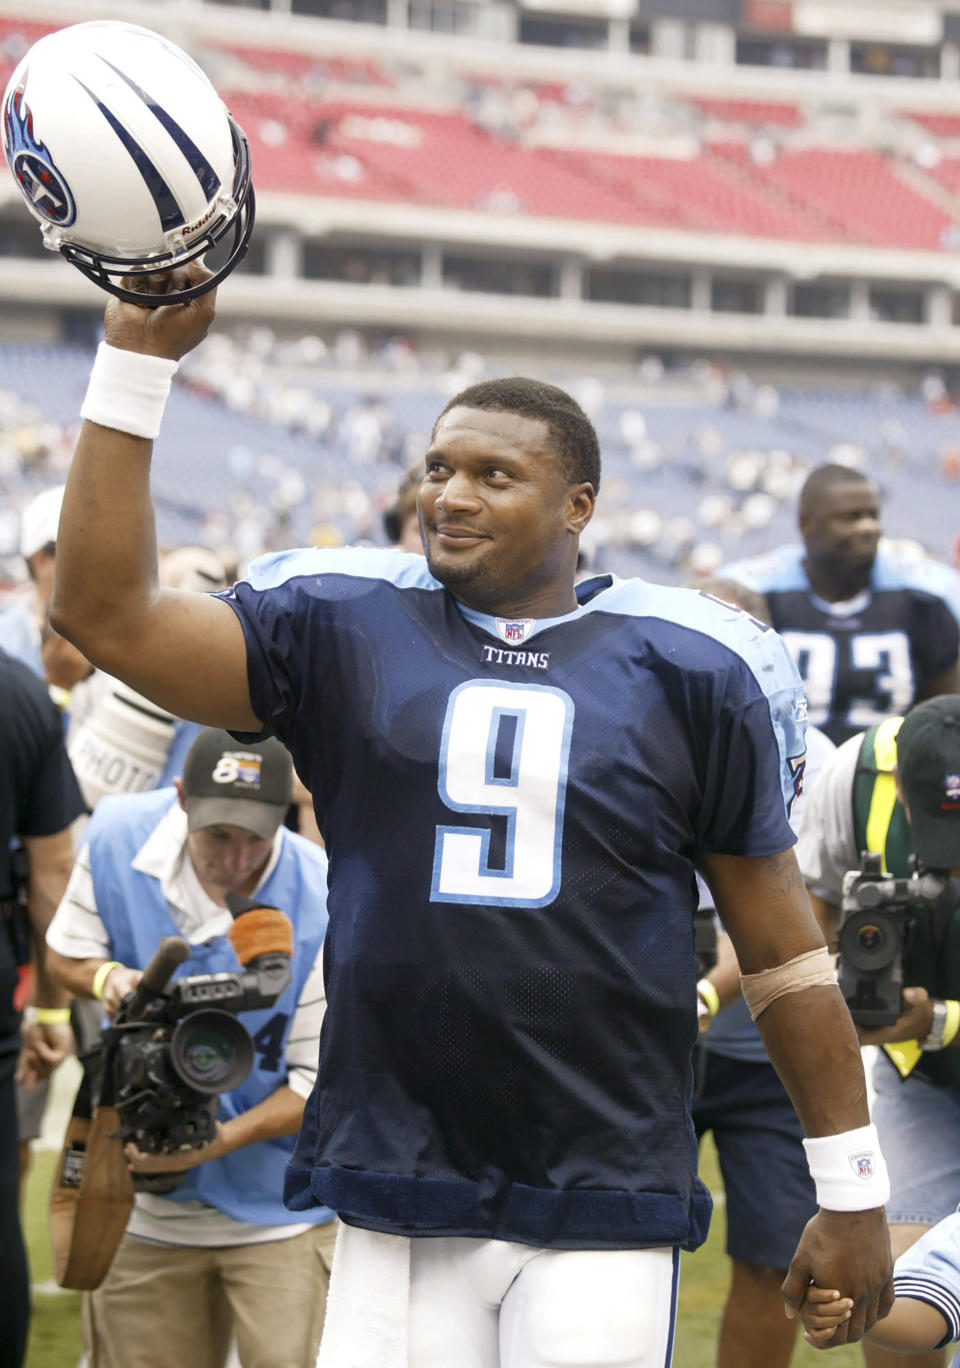 FILE - In this Sept. 21, 2003, file photo, Tennessee Titans quarterback Steve McNair leaves the field after the team's 27-12 win over the New Orleans Saints in Nashville, Tenn. The Tennessee Titans retiring Eddie George's No. 27 and the No. 9 of the late Steve McNair has turned from a simple halftime ceremony into a celebration and team reunion. (AP Photo/Wade Payne)